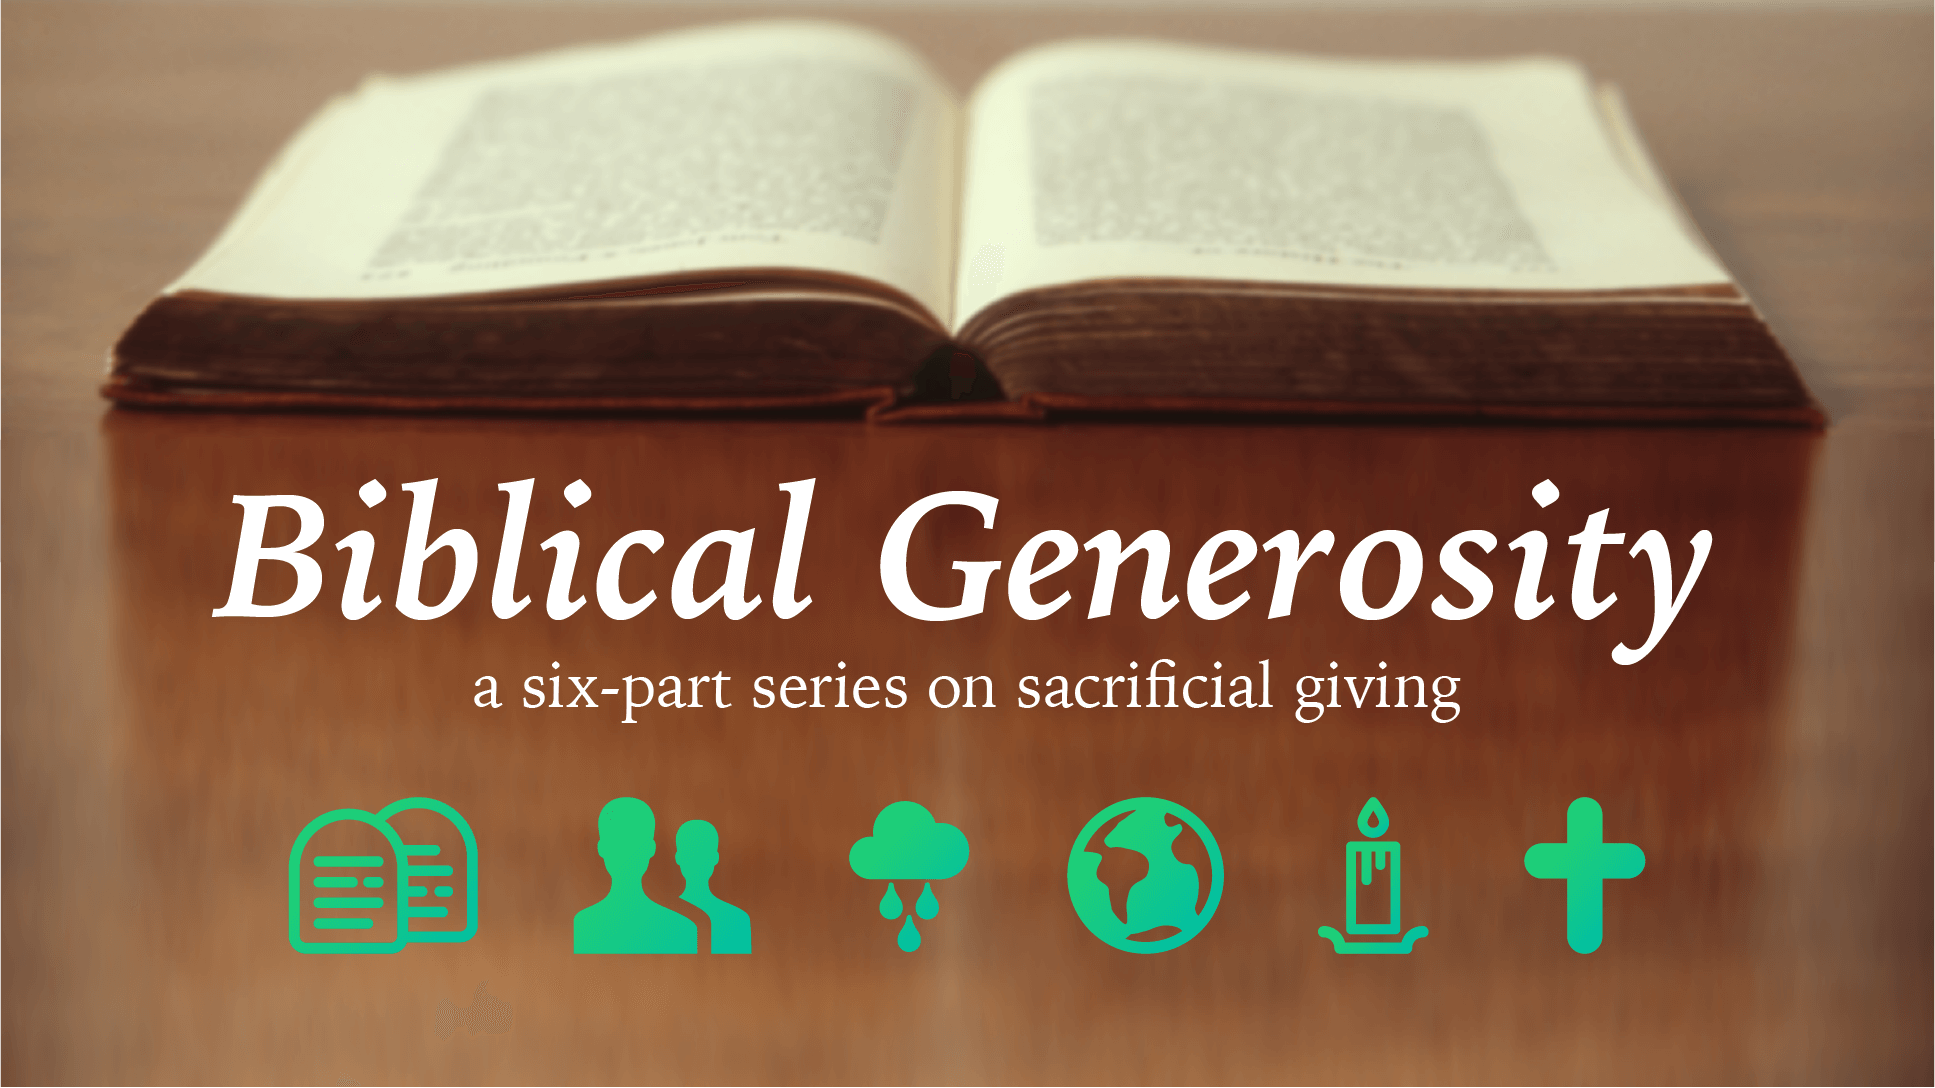 Biblical Generosity Series - Read Robert's blog series about generosity in the Bible, or listen to audio from Stewardship Sunday.